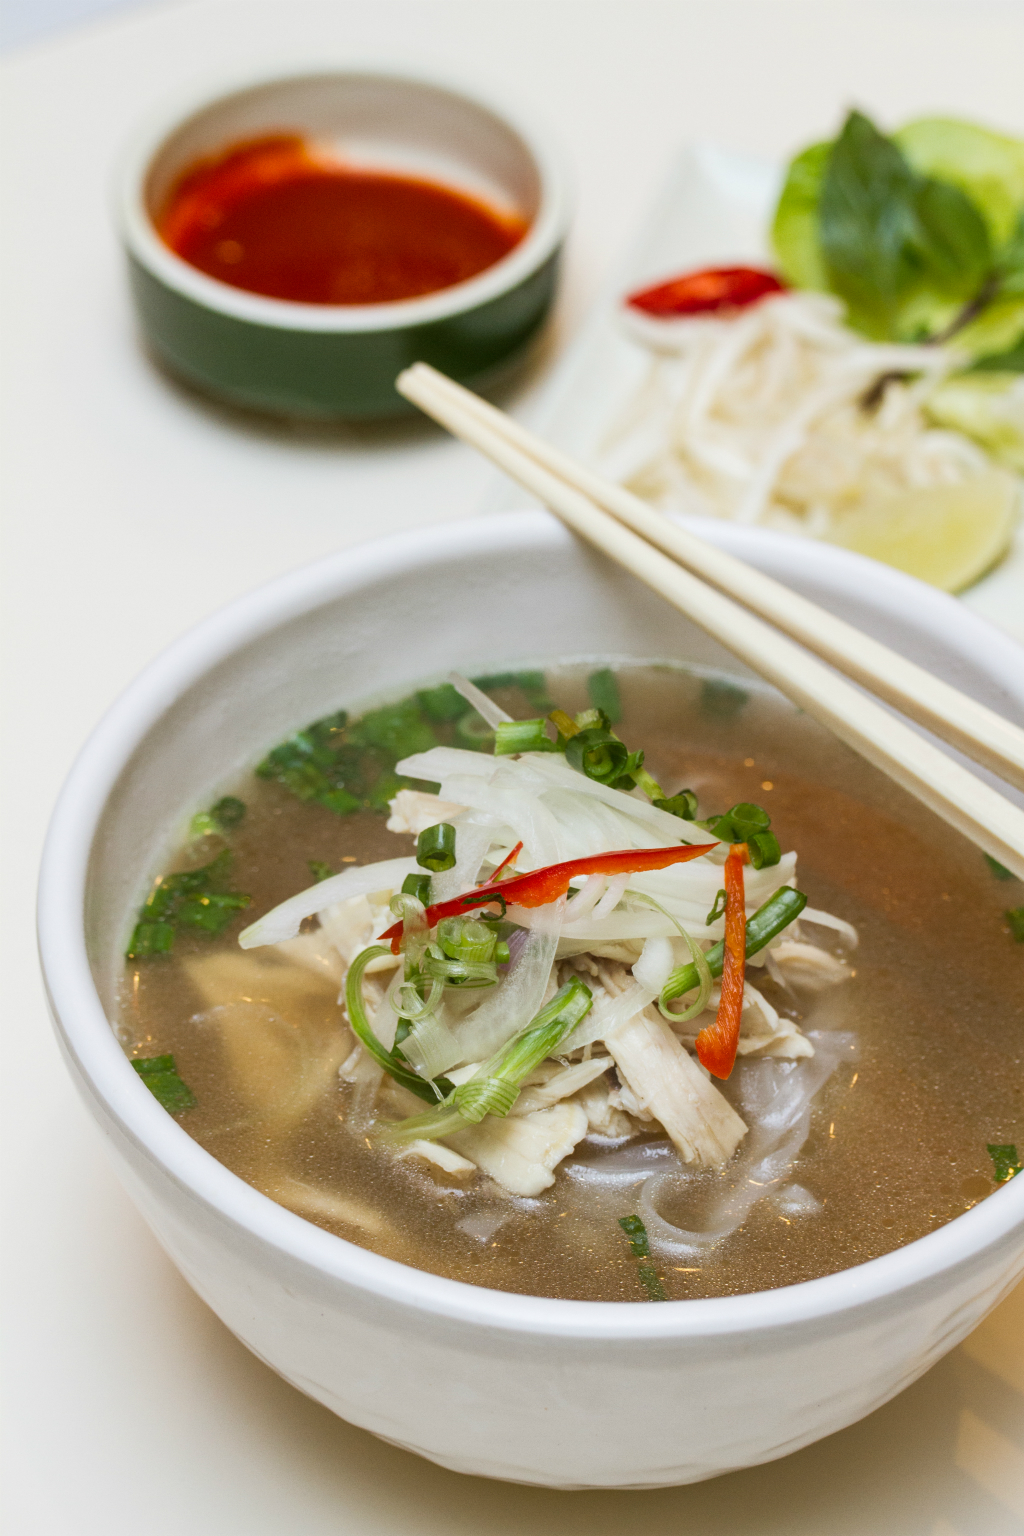 ION Food 1 for 1: Wrap & Roll chicken pho